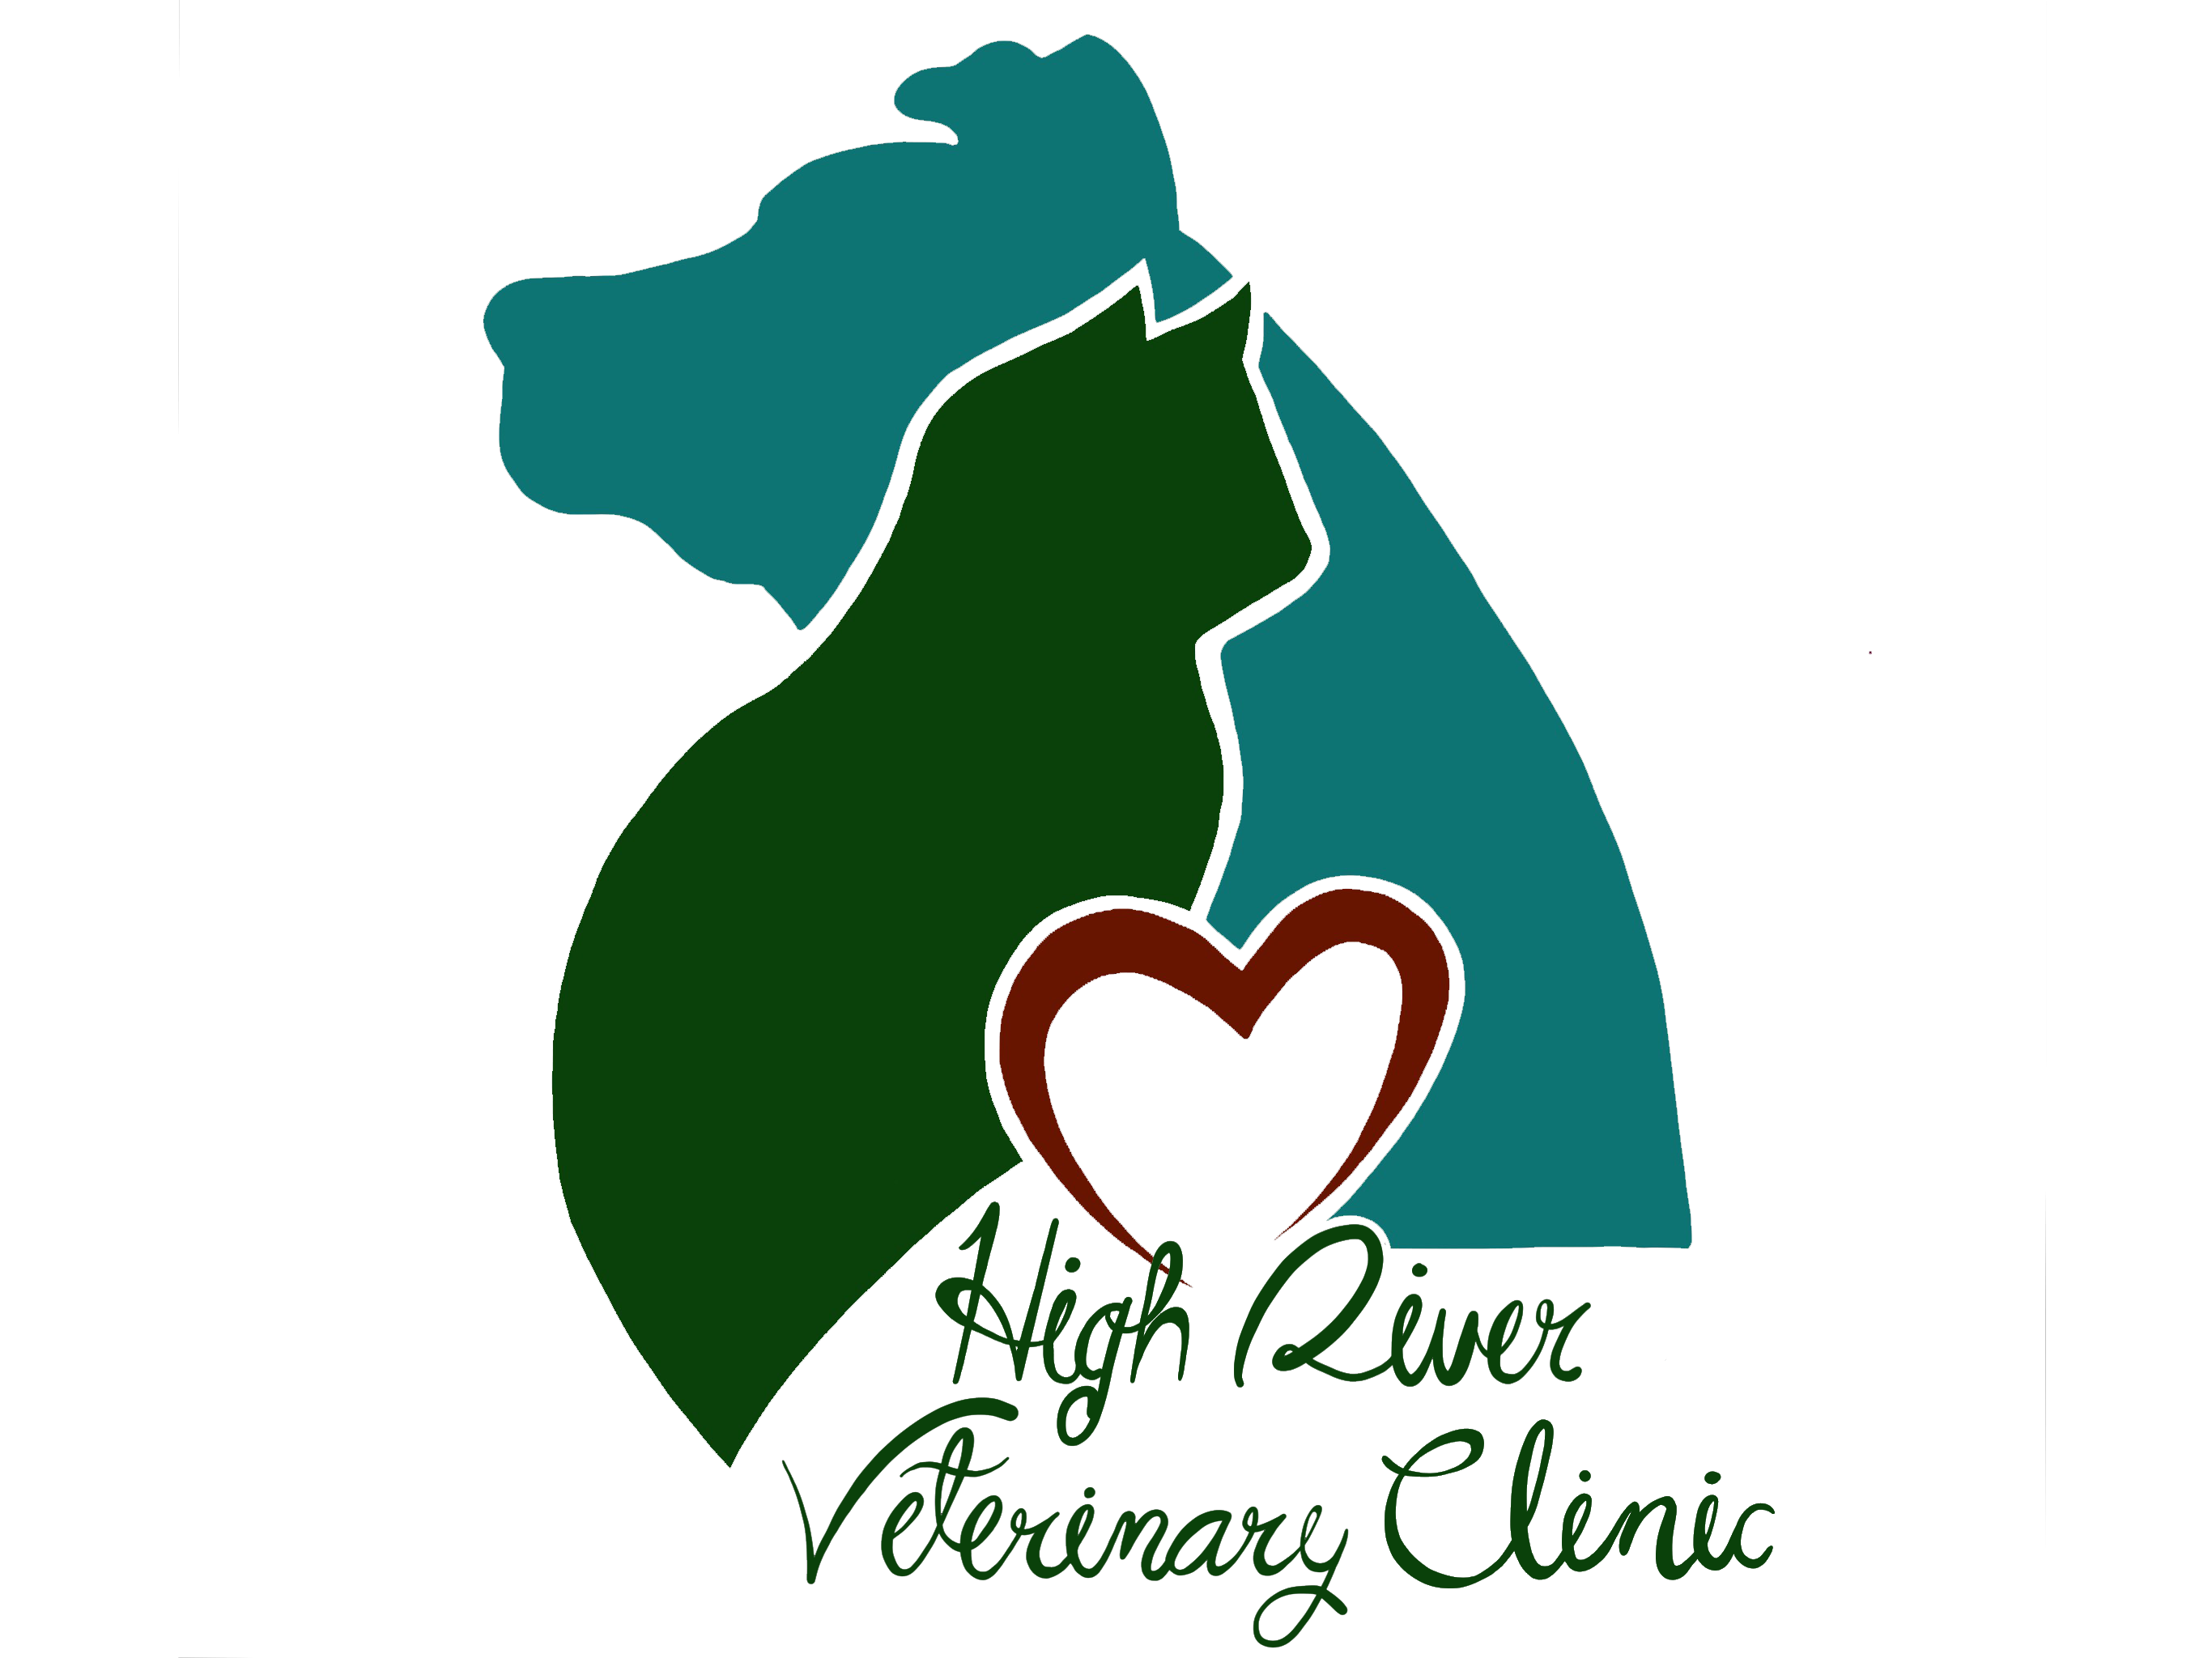 High River Veterinary Clinic